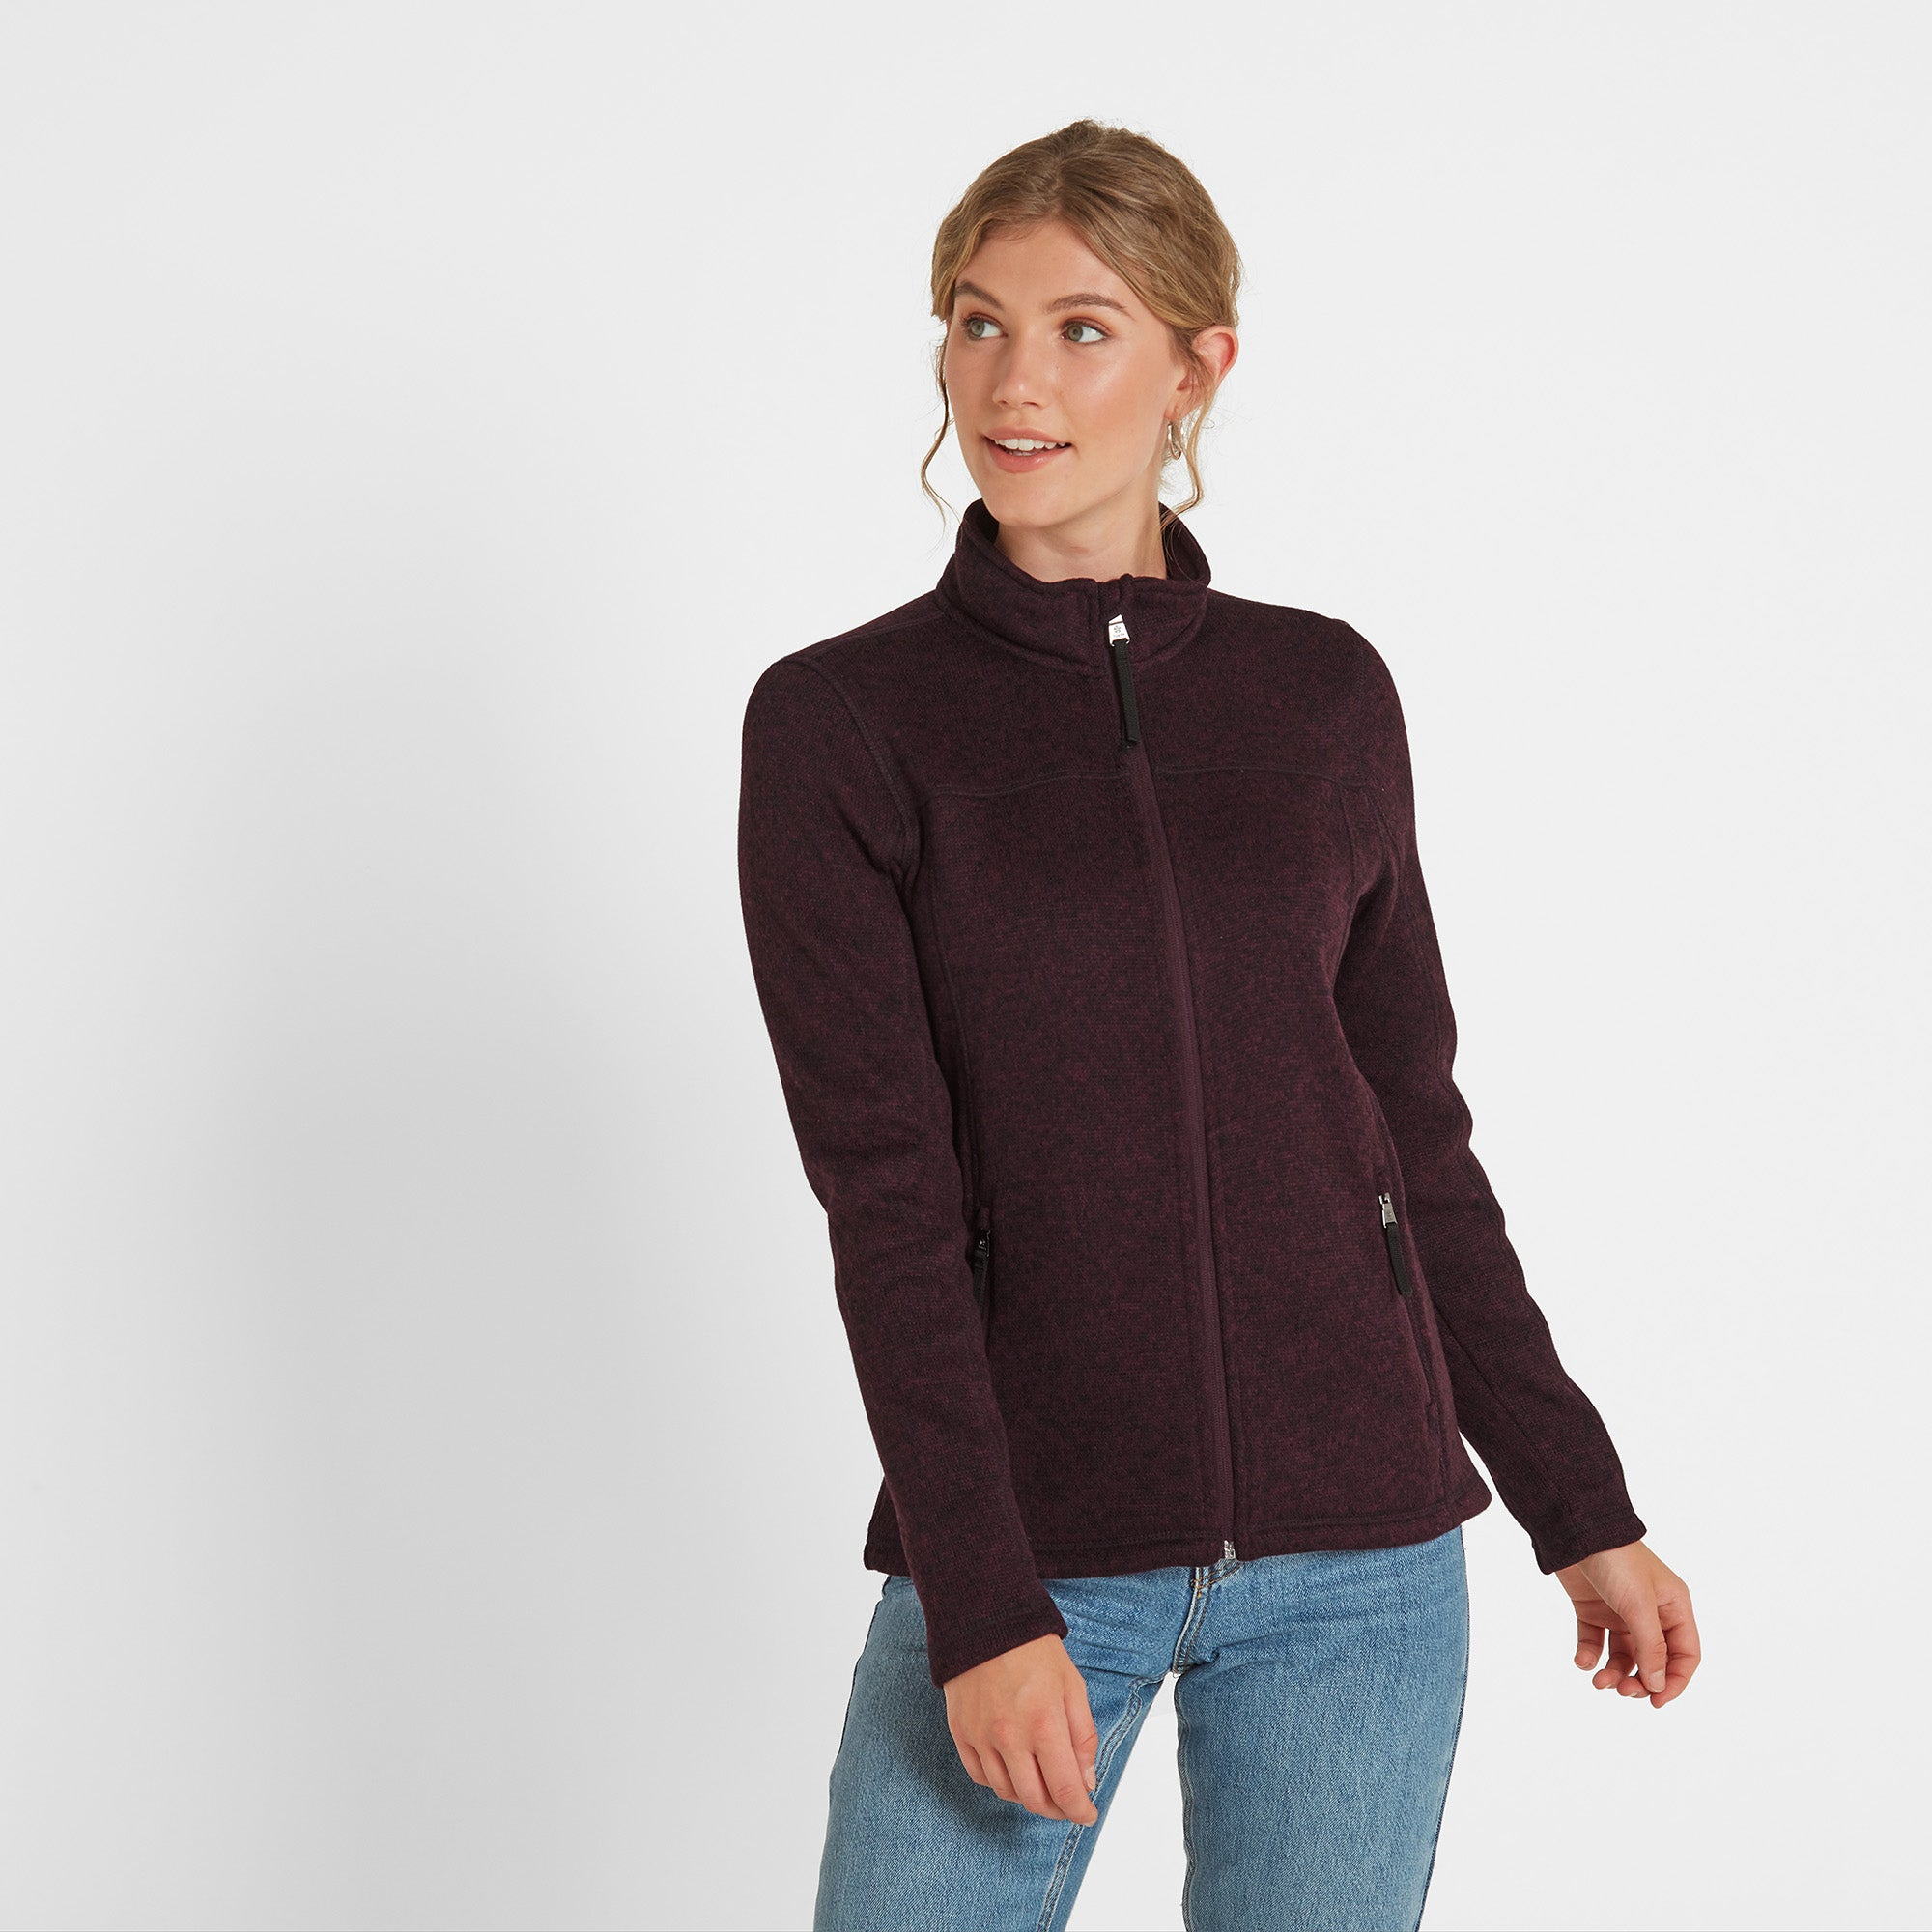 Charlton Womens Knitlook Fleece Jacket - Aubergine